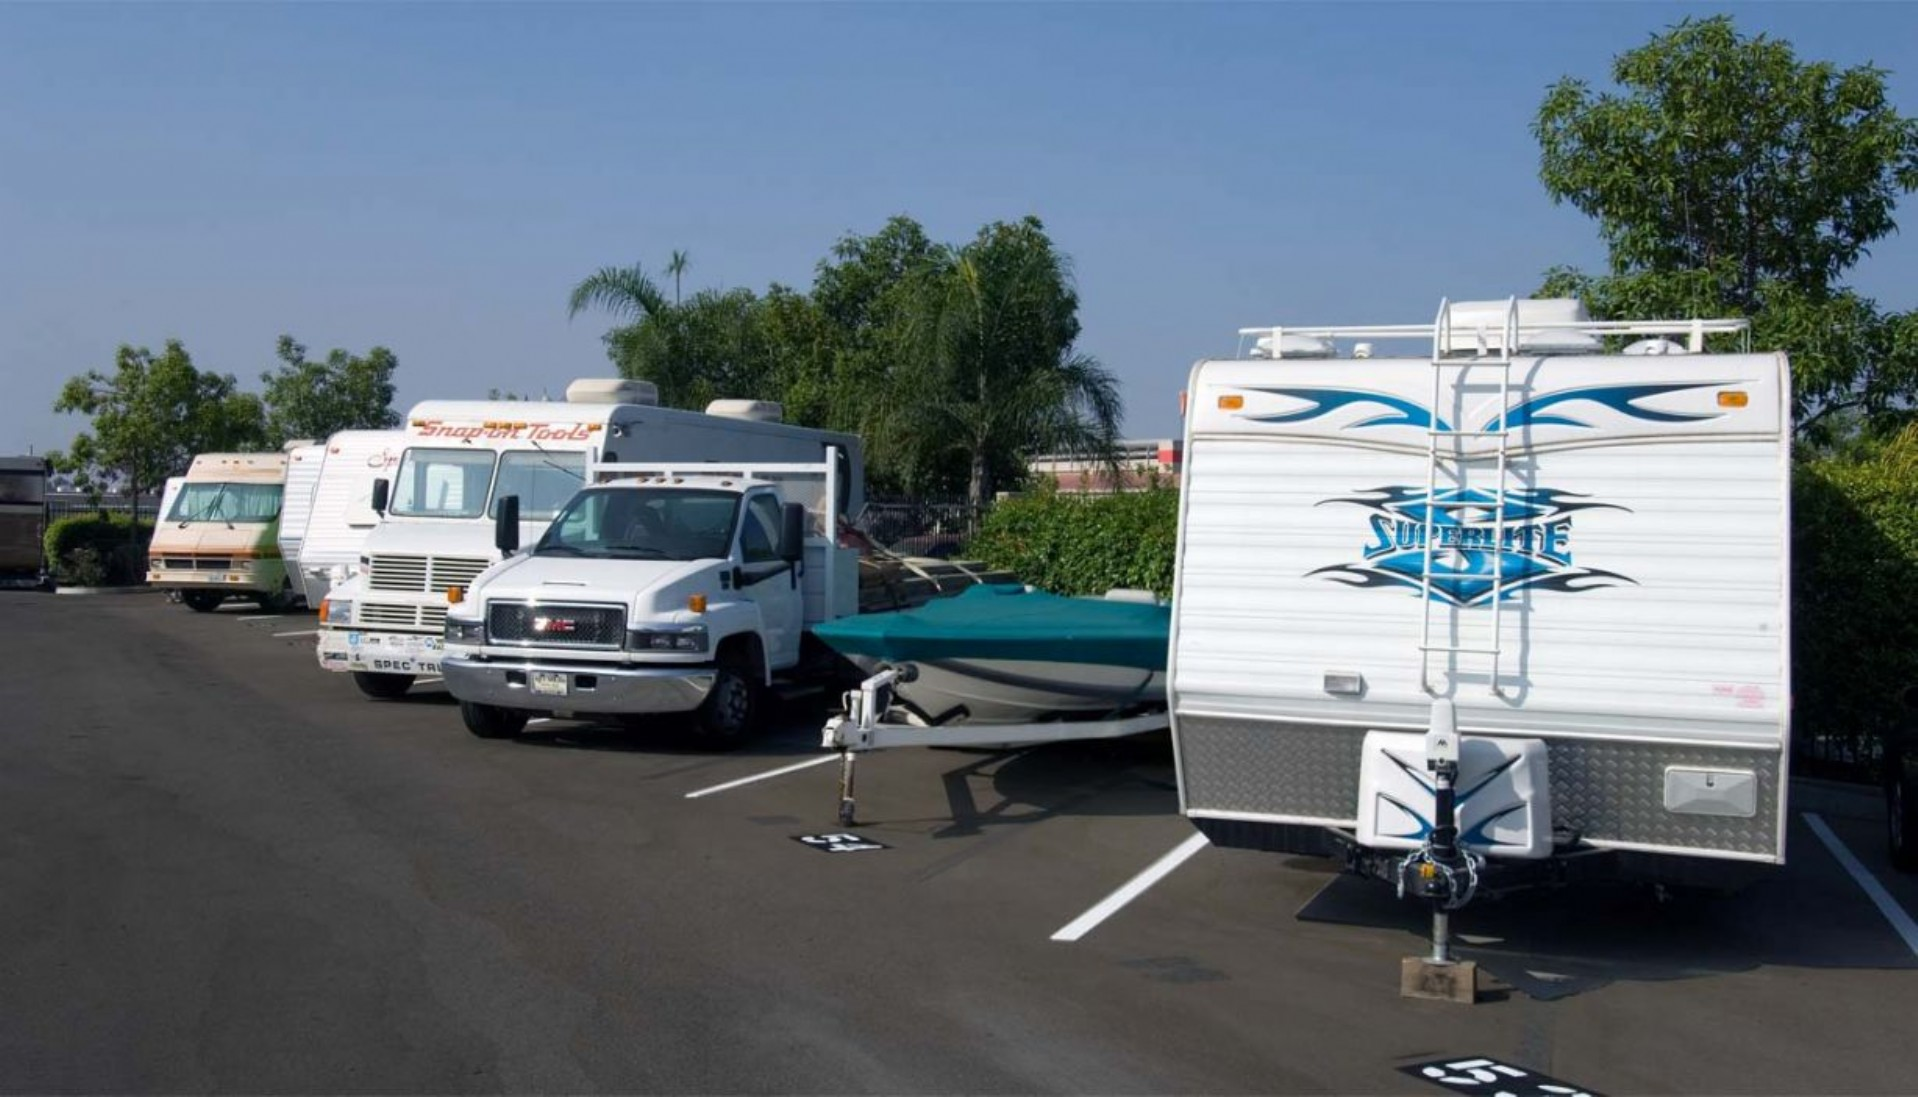 Price Self Storage Azusa RV, boat and vehicle parking spaces